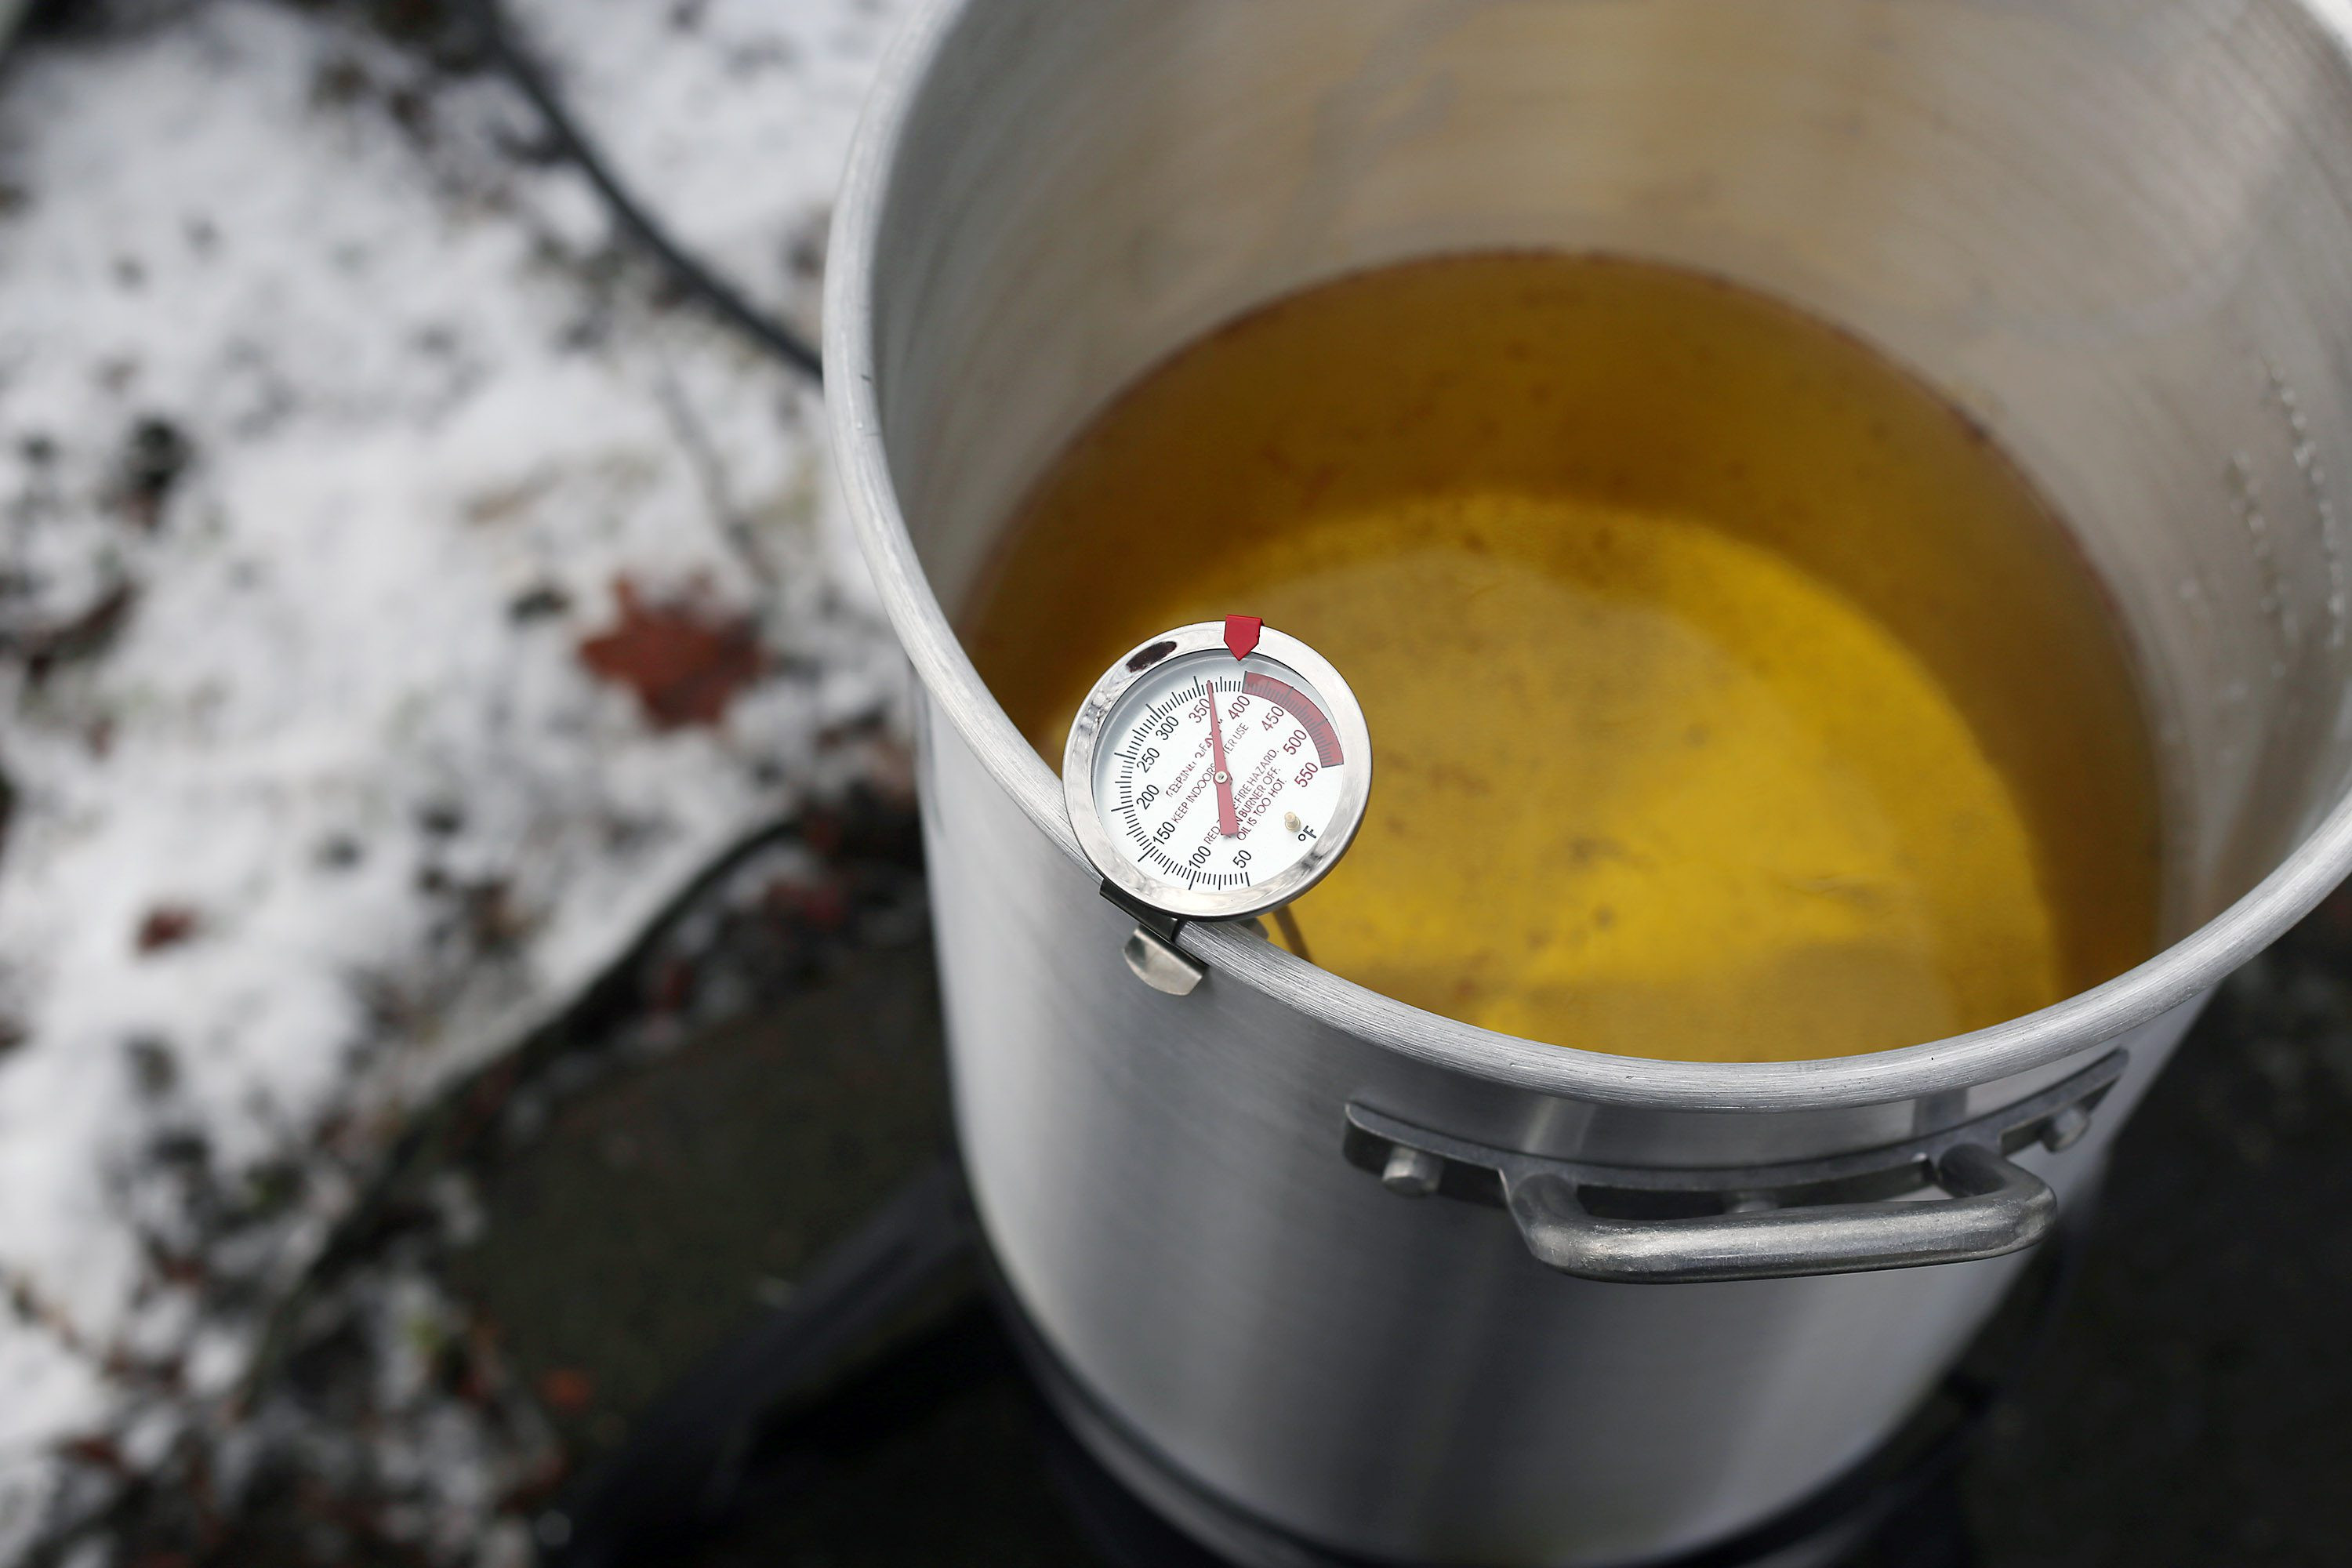 Fried Chicken Oil Temp  How to Deep Fry a Whole Chicken in Peanut Oil